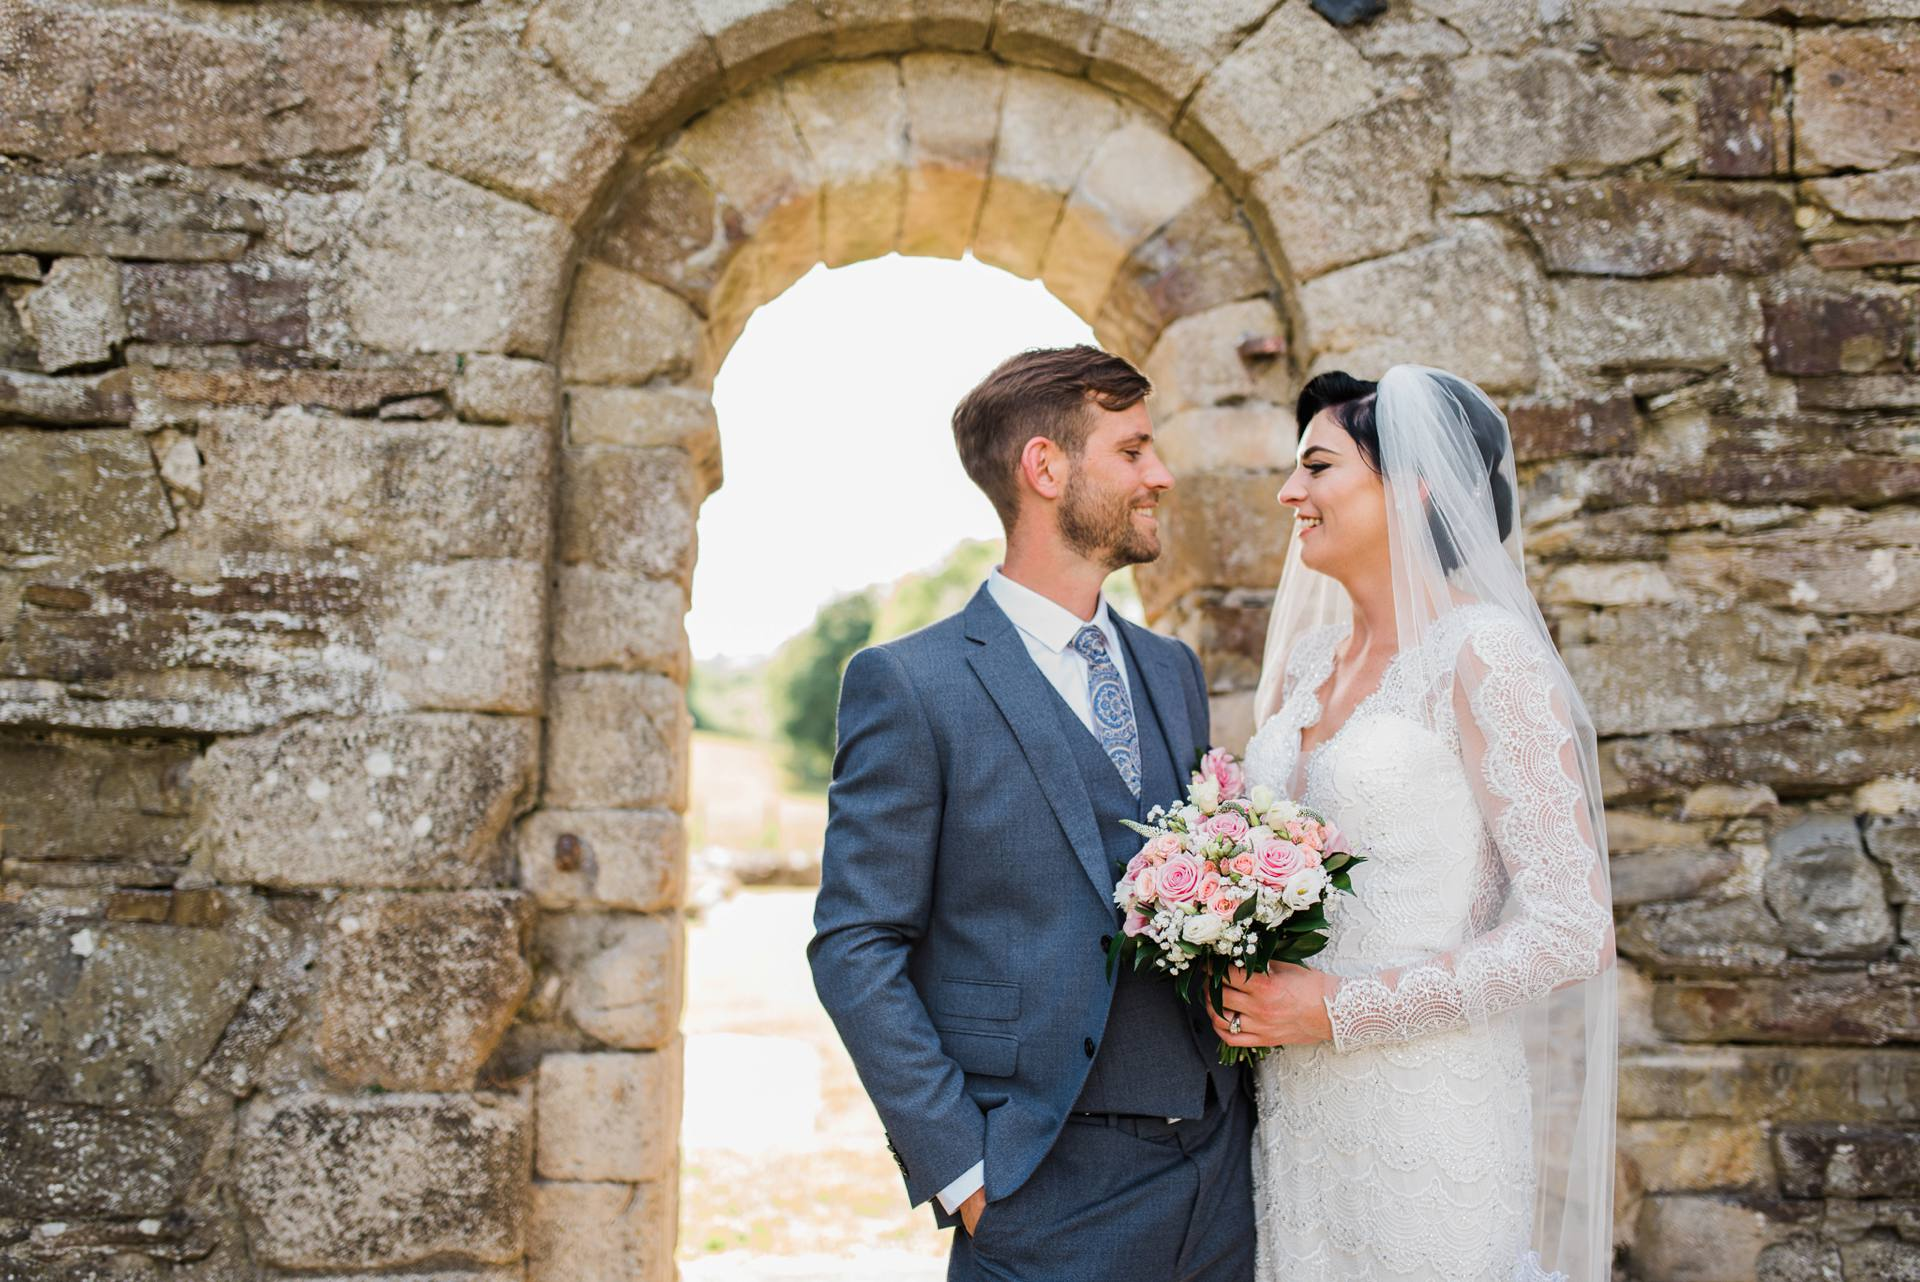 Bride and groom standing in stone archway